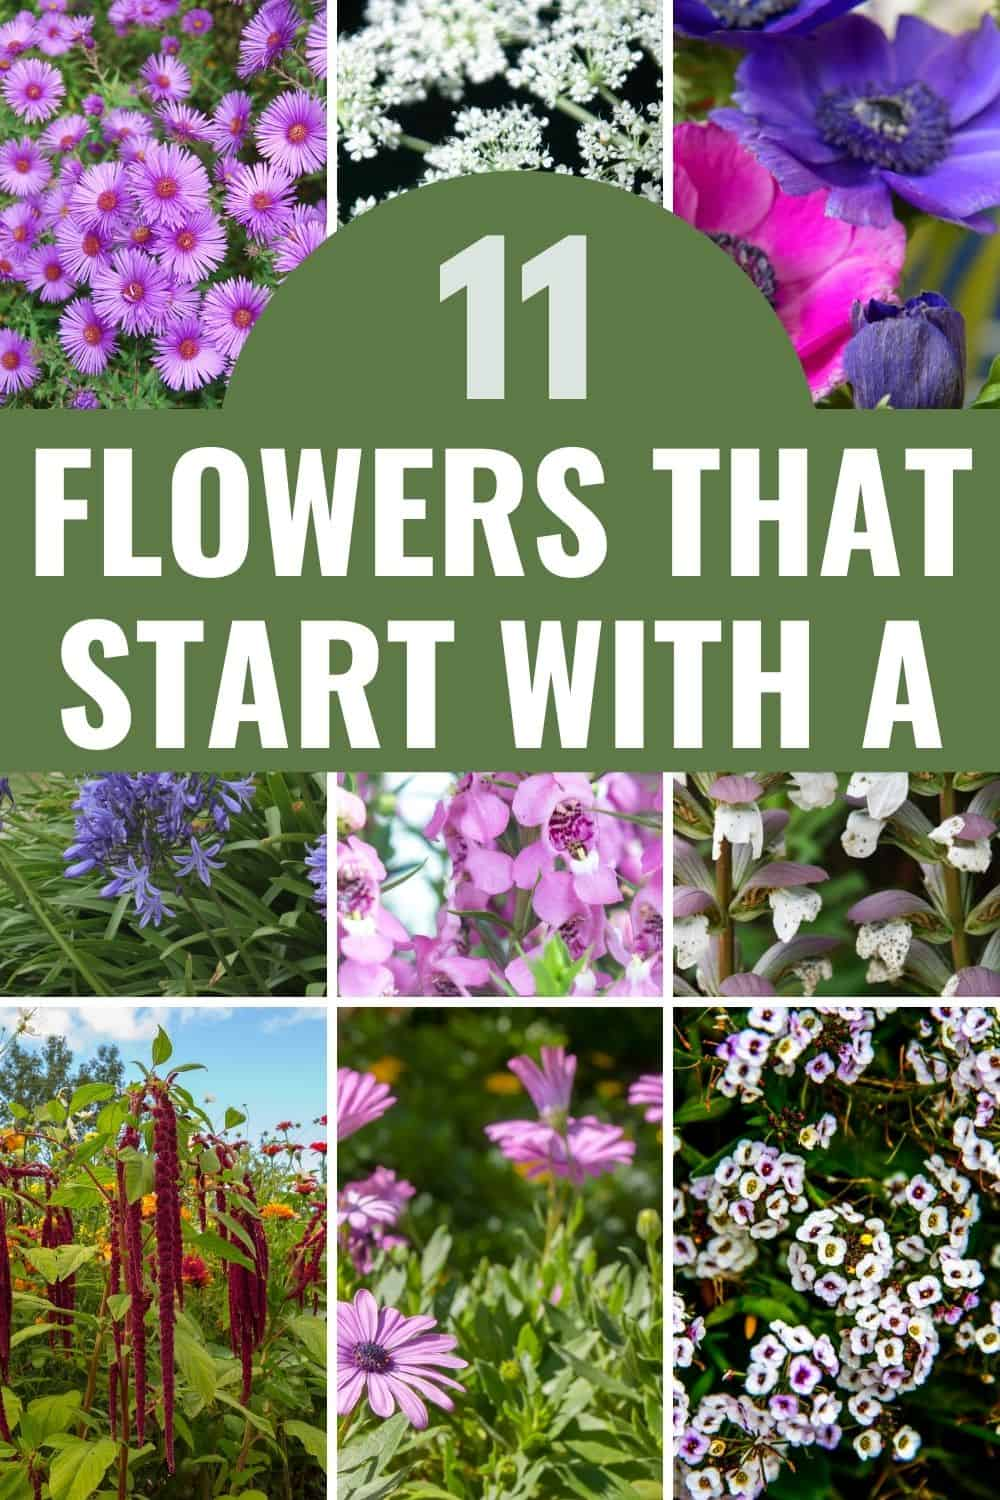 11 flowers that start with A